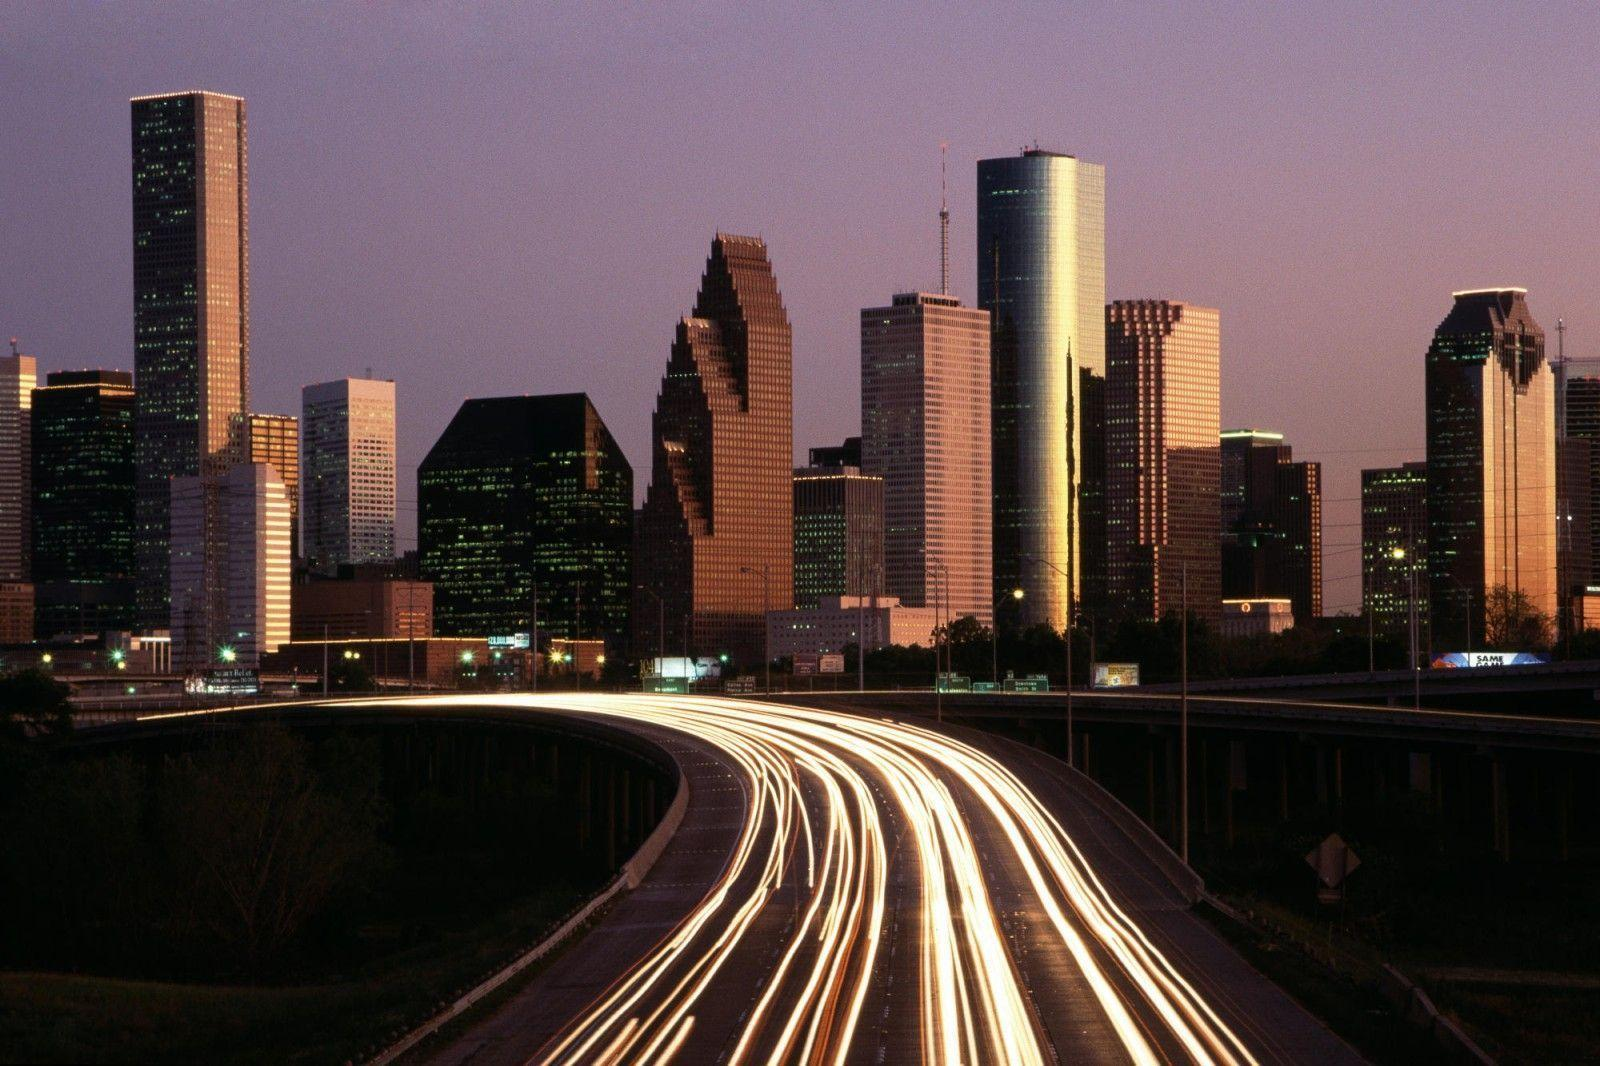 downtown dallas hd wallpapers - photo #23